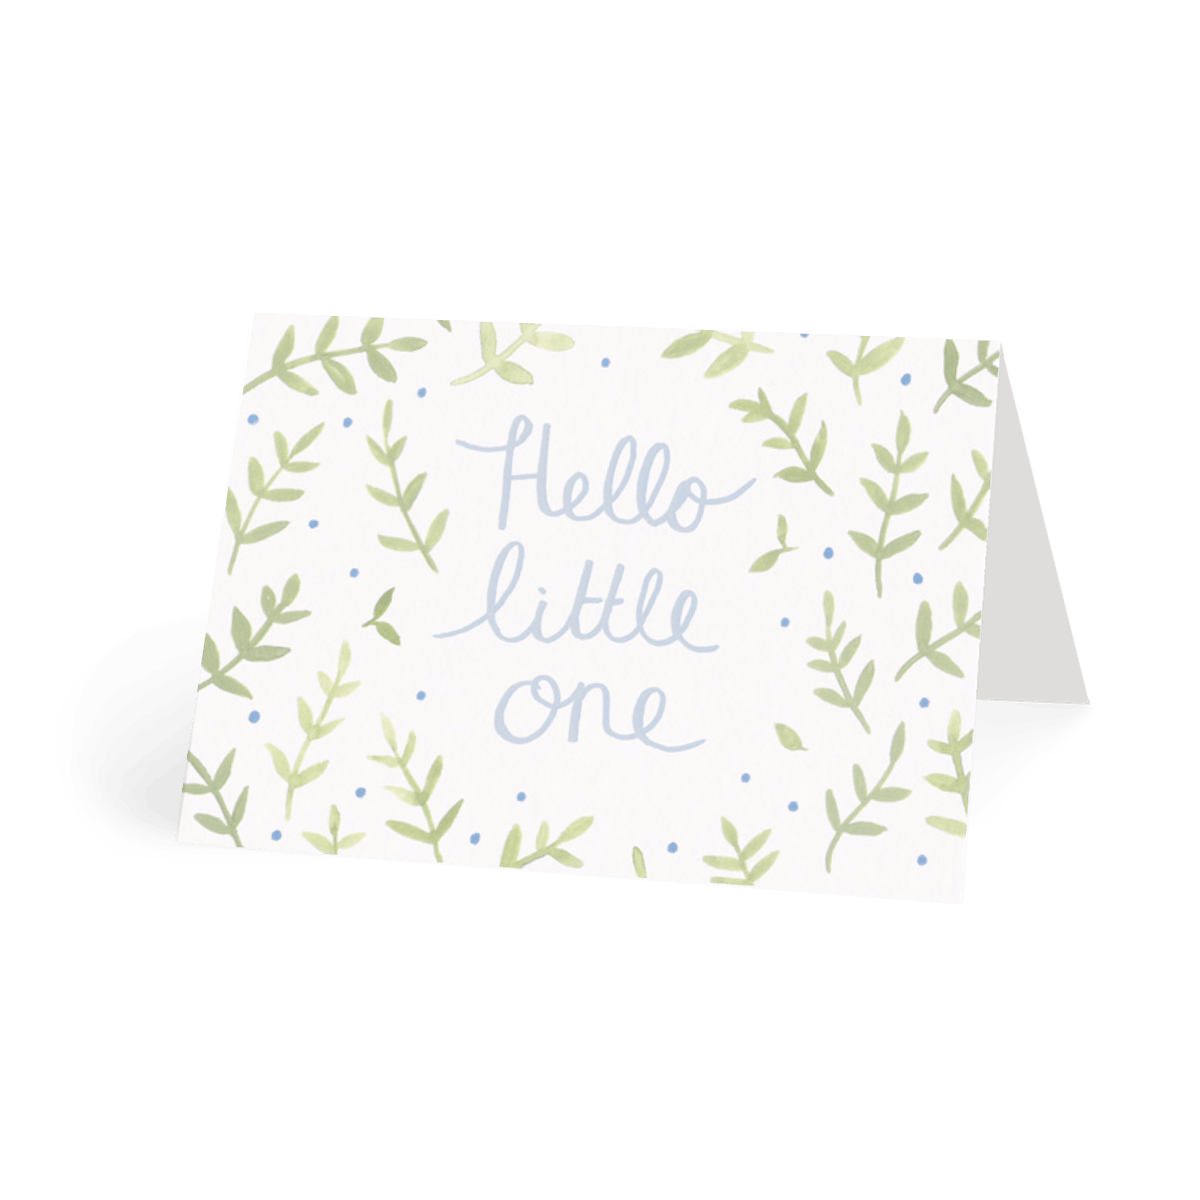 Https%3a%2f%2fwww.papier.com%2fproduct image%2f7914%2f14%2fhello little one blue 1954 front 1464948603.png?ixlib=rb 1.1